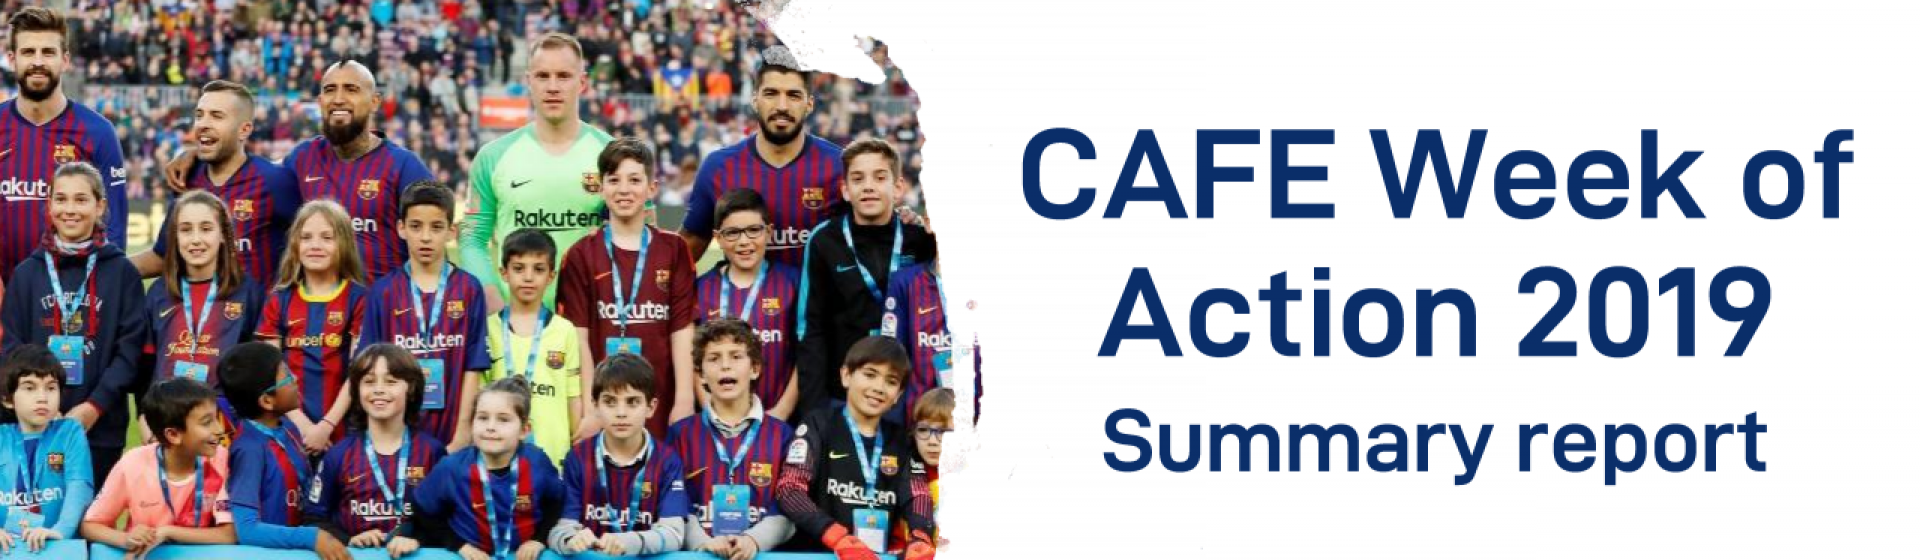 CAFE Week of Action 2019 Report header